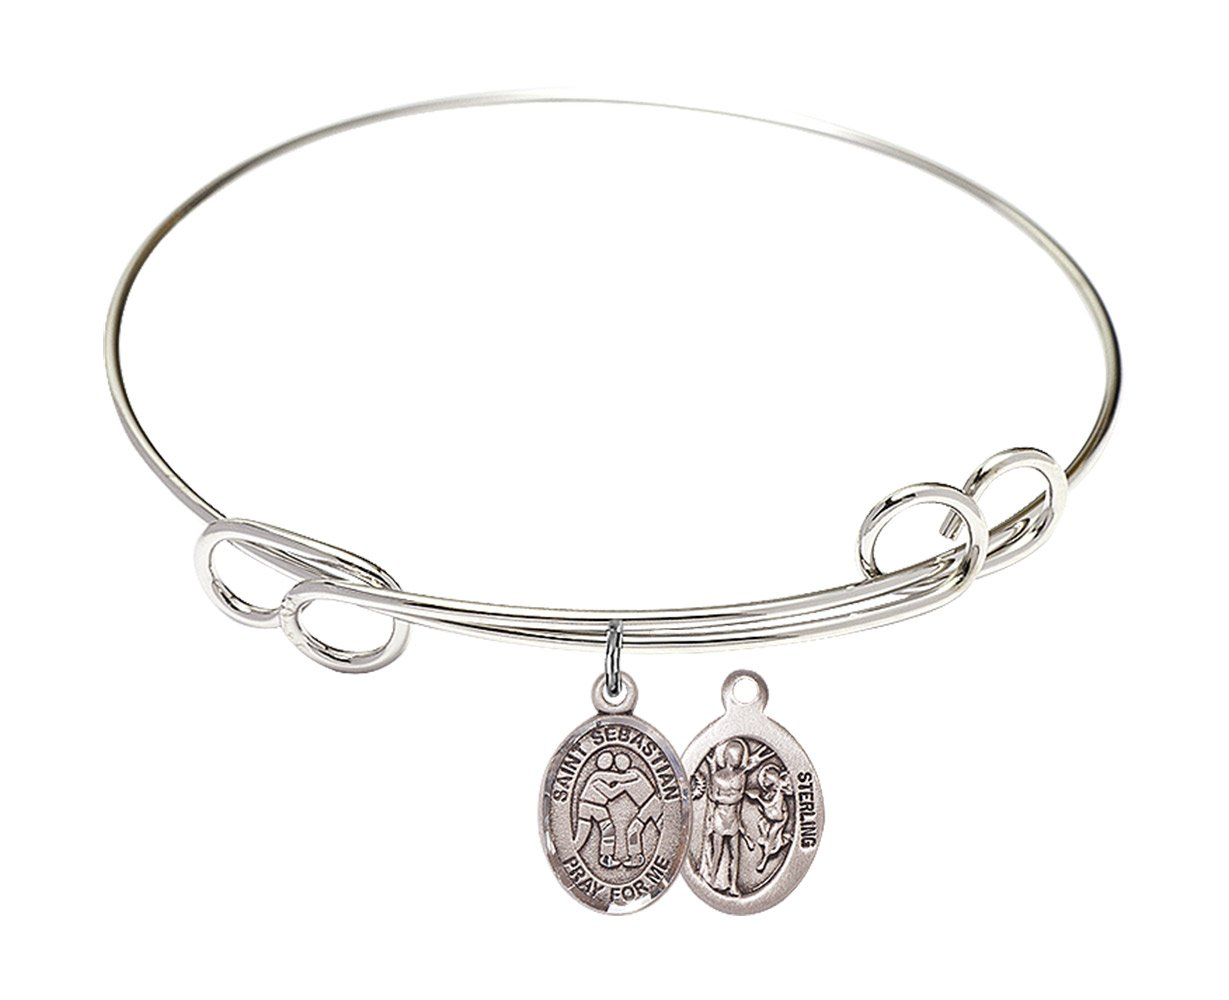 7 1/2 inch Round Double Loop Bangle Bracelet with a St. Sebastian/Wrestling charm.